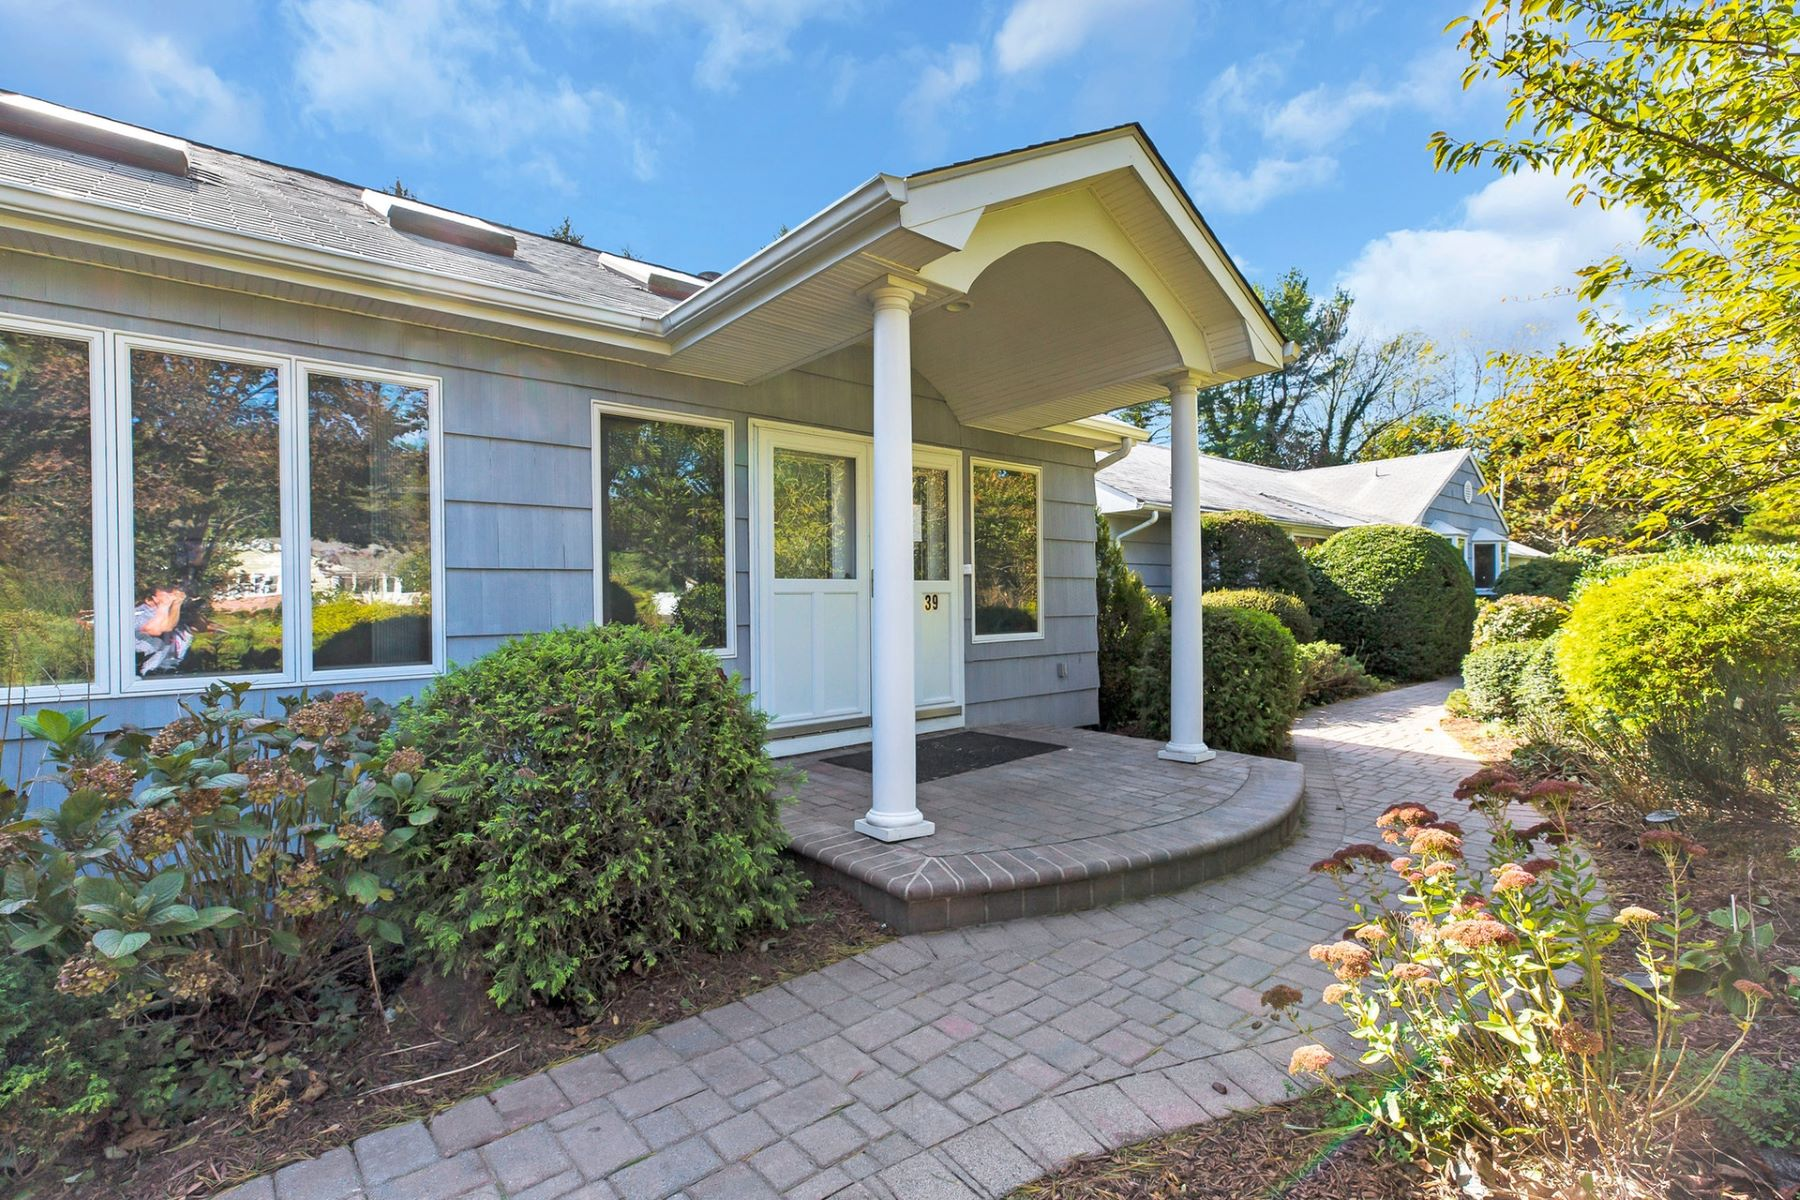 Single Family Homes for Sale at Cold Spring Hrbr 39 Eastwoods Dr Cold Spring Harbor, New York 11724 United States